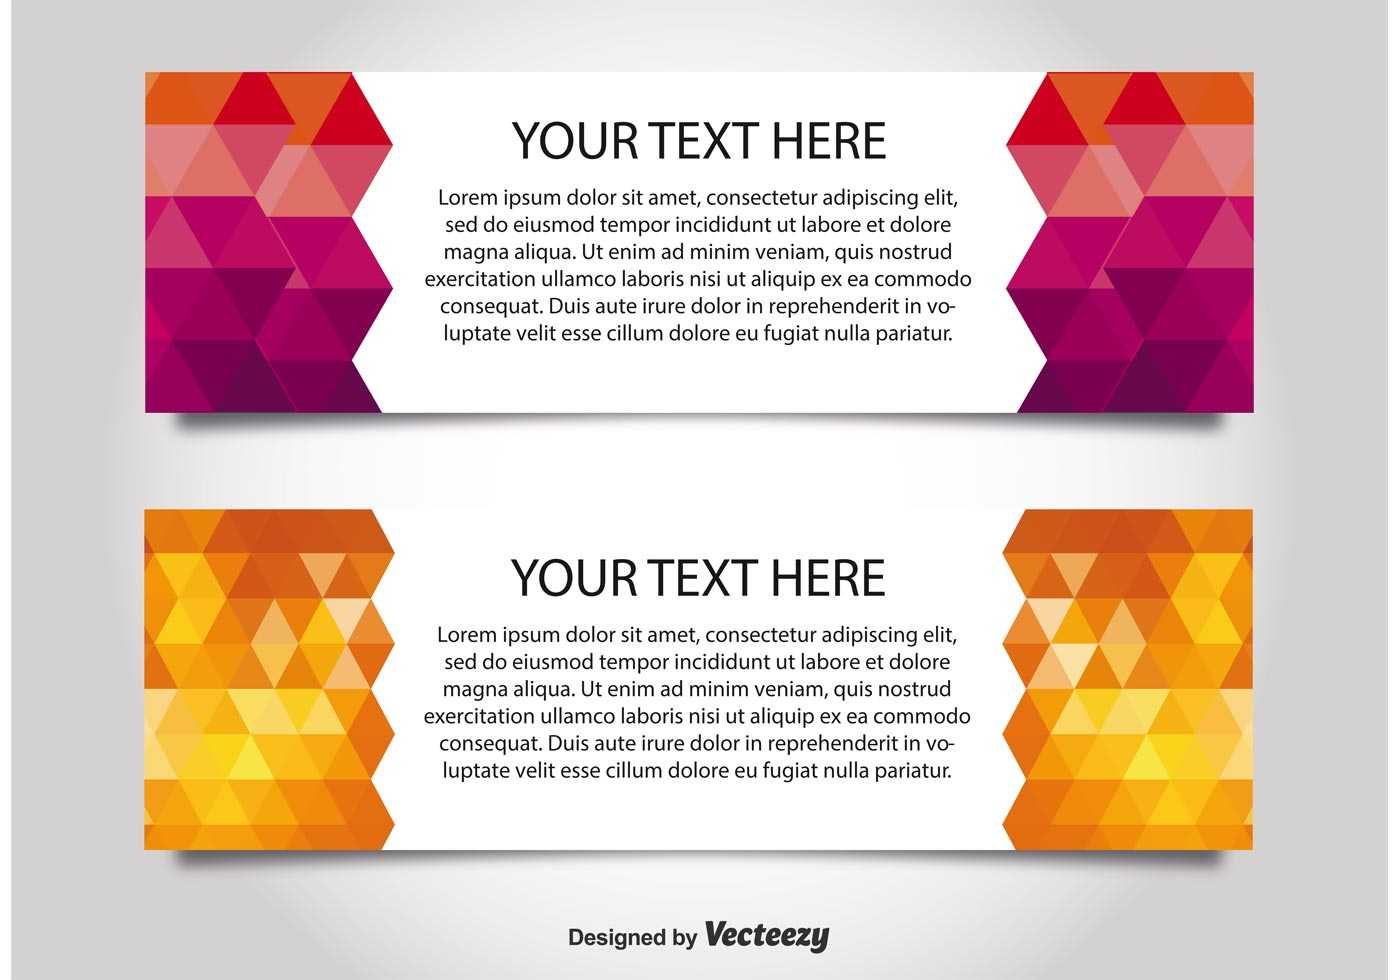 Modern Style Web Banner Templates - Download Free Vectors In Free Website Banner Templates Download